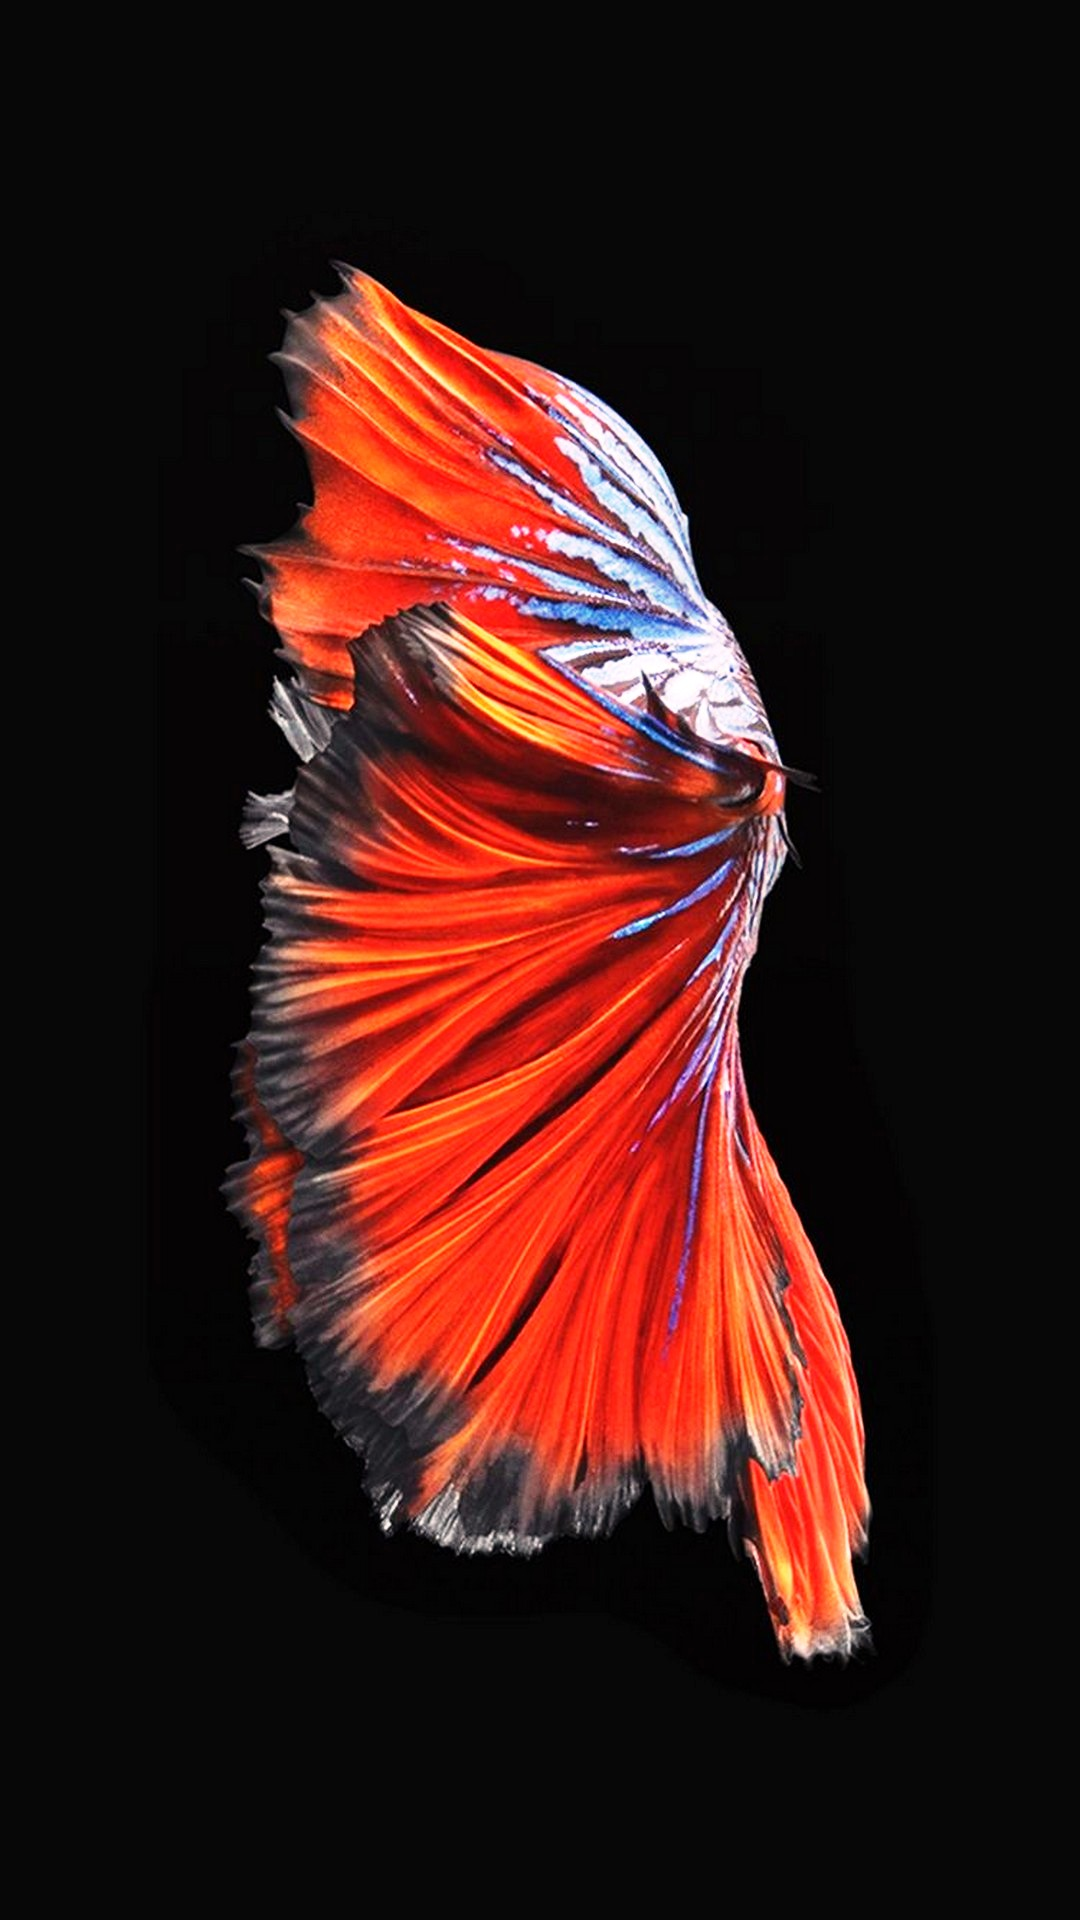 Iphone 6s Plus Wallpaper With High-resolution Pixel - Apple Iphone 6s Plus Fish - HD Wallpaper